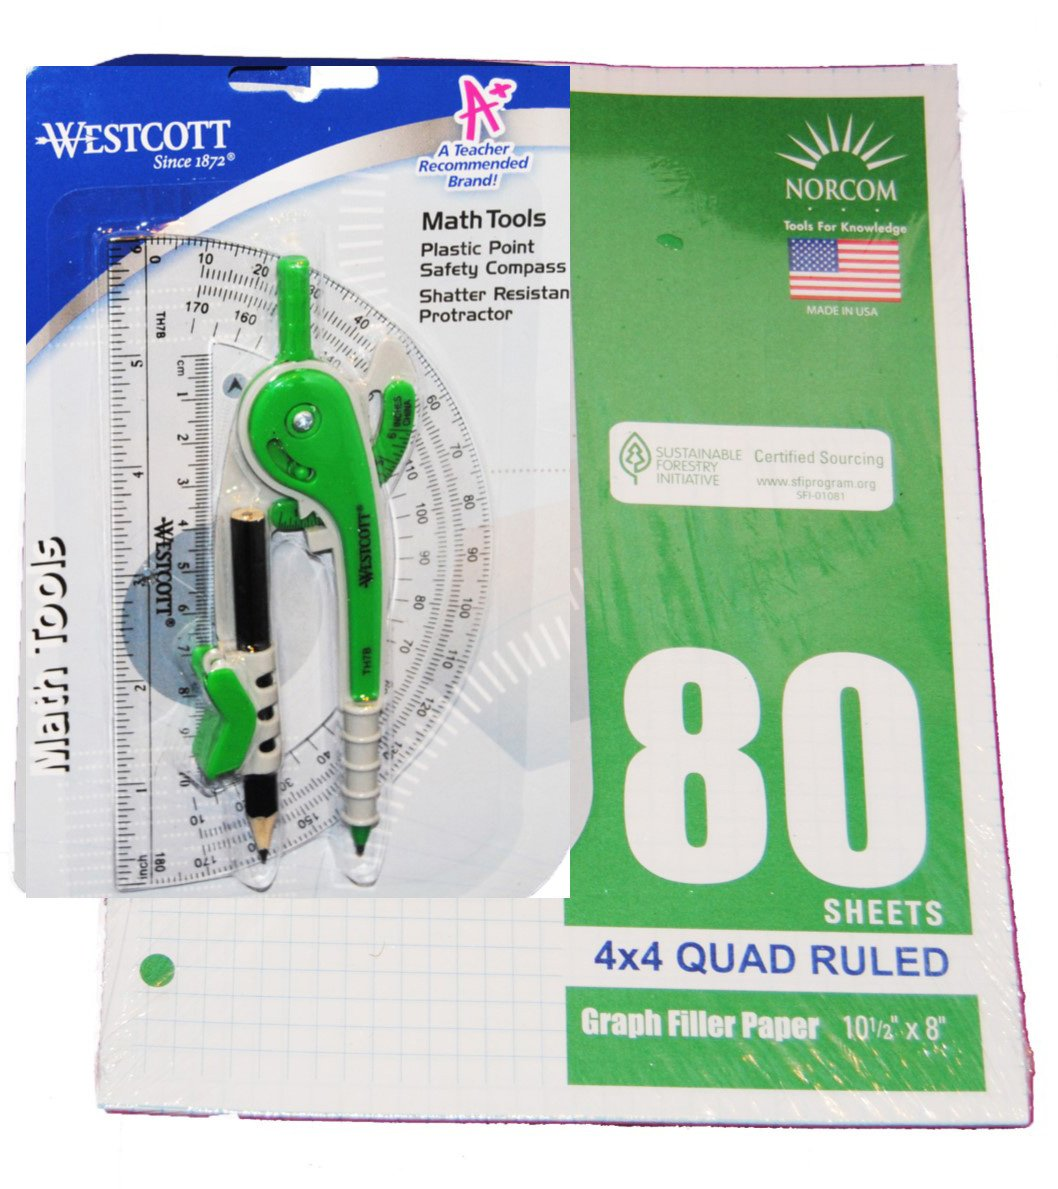 Geometry Set: 80 Sheets of 3 holed Graph Paper, Compass and Protractor (blue/green)